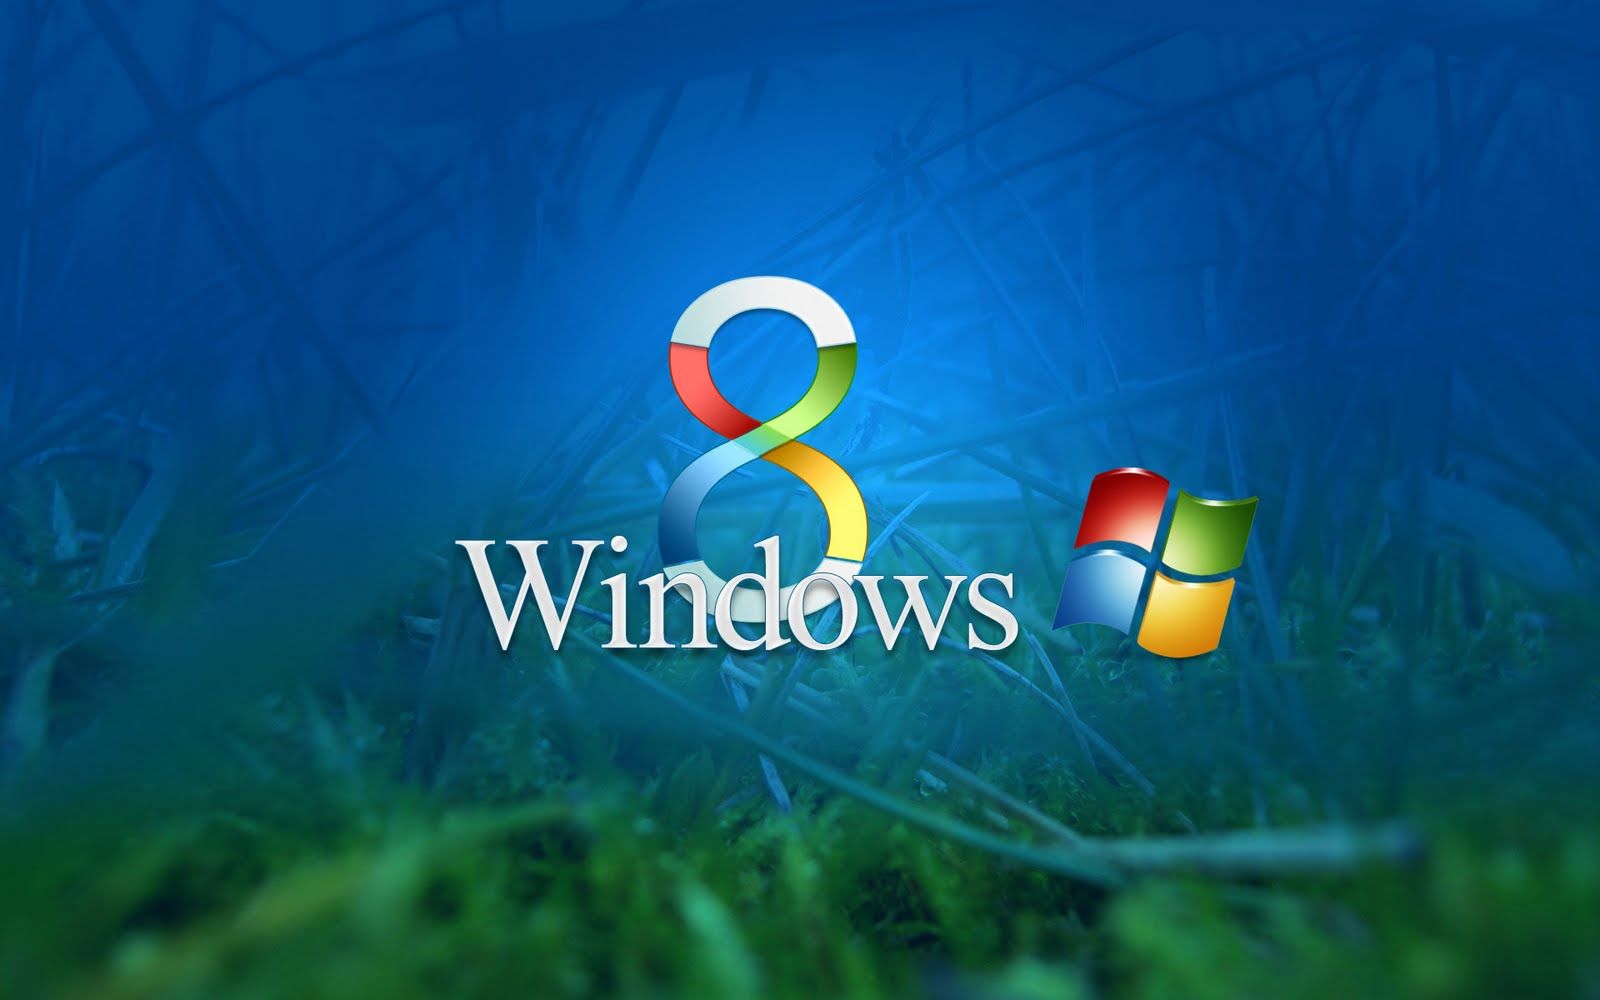 http://2.bp.blogspot.com/-pPt_a_qIU_g/TmxxHyayR5I/AAAAAAAAB3A/U2LsBybI1rQ/s1600/Unofficial-Windows-8-Wallpaper.jpg